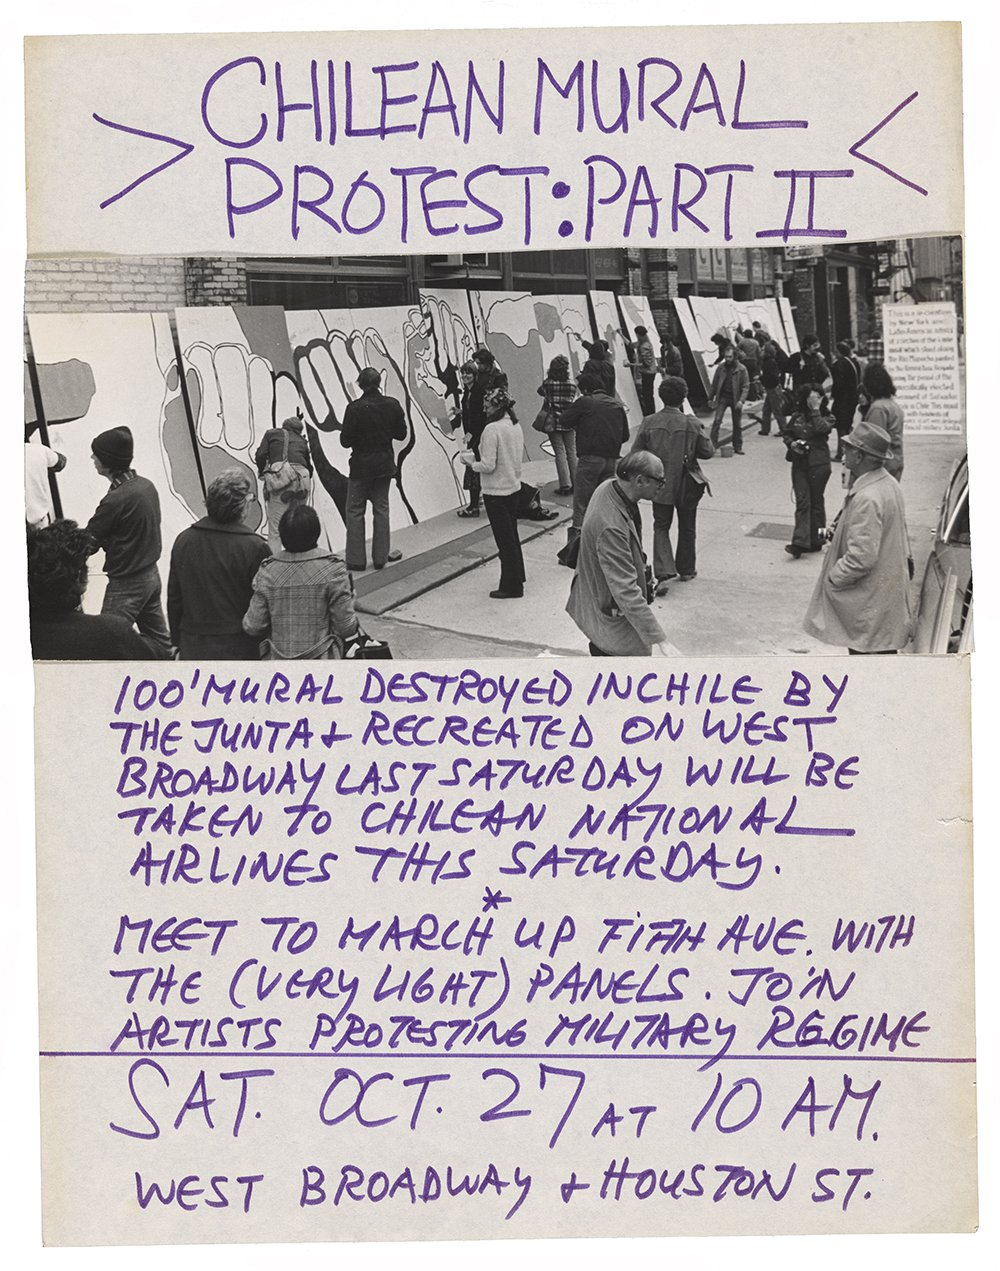 Poster advertising the second of a two-part action in New York protesting the 1973 Chilean coup.